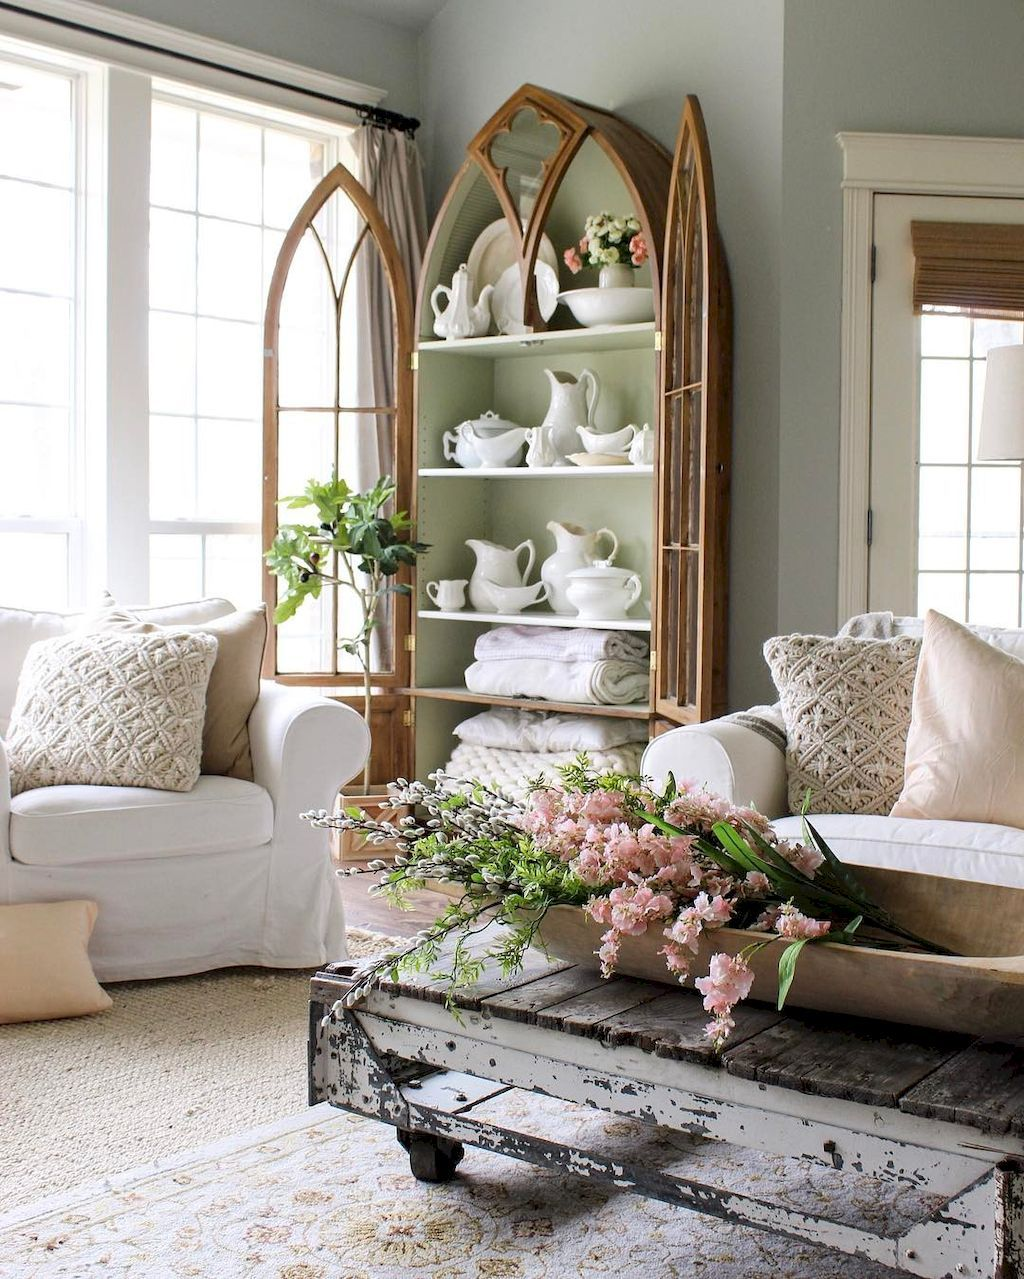 Pin by Amber Anderson on Interiors in 2019 | Living room ...